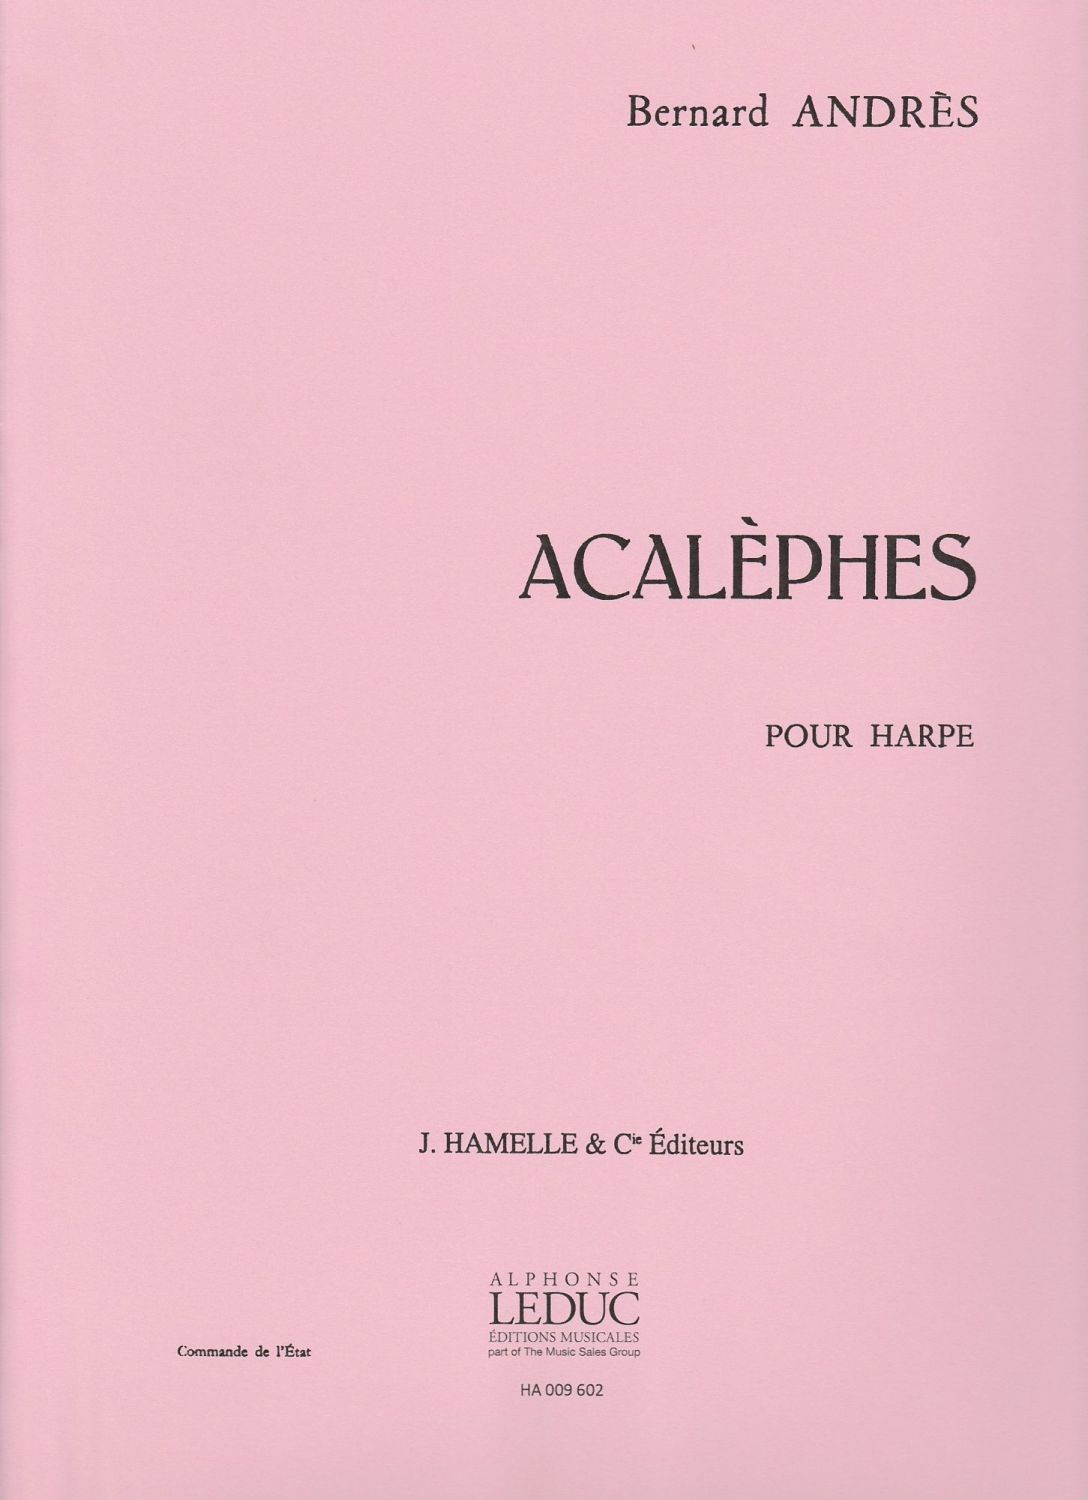 Acalephes - Bernard Andres